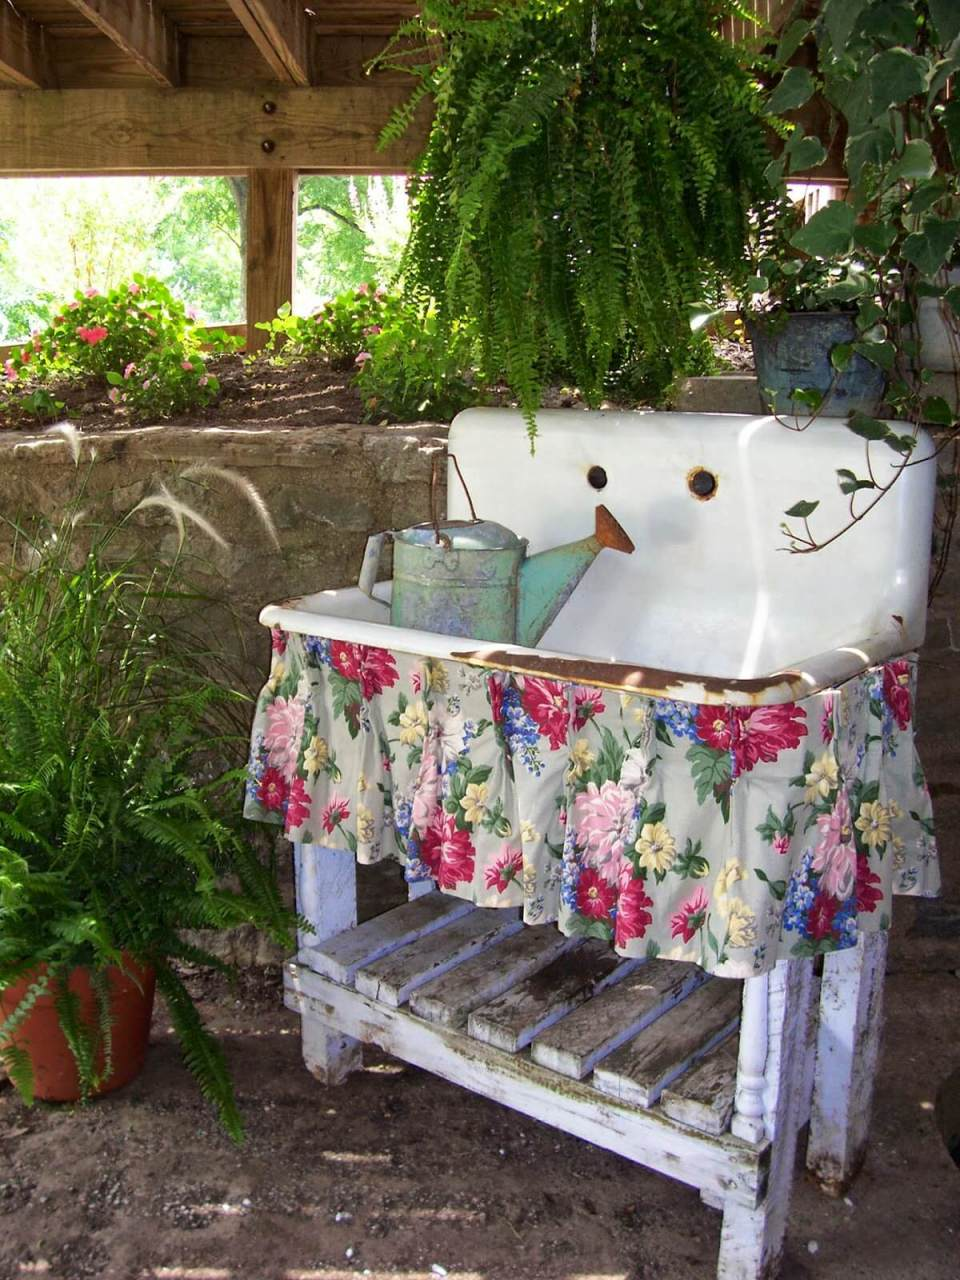 Vintage Garden Decor Ideas: Upcycled Antique Sink Garden Decoration